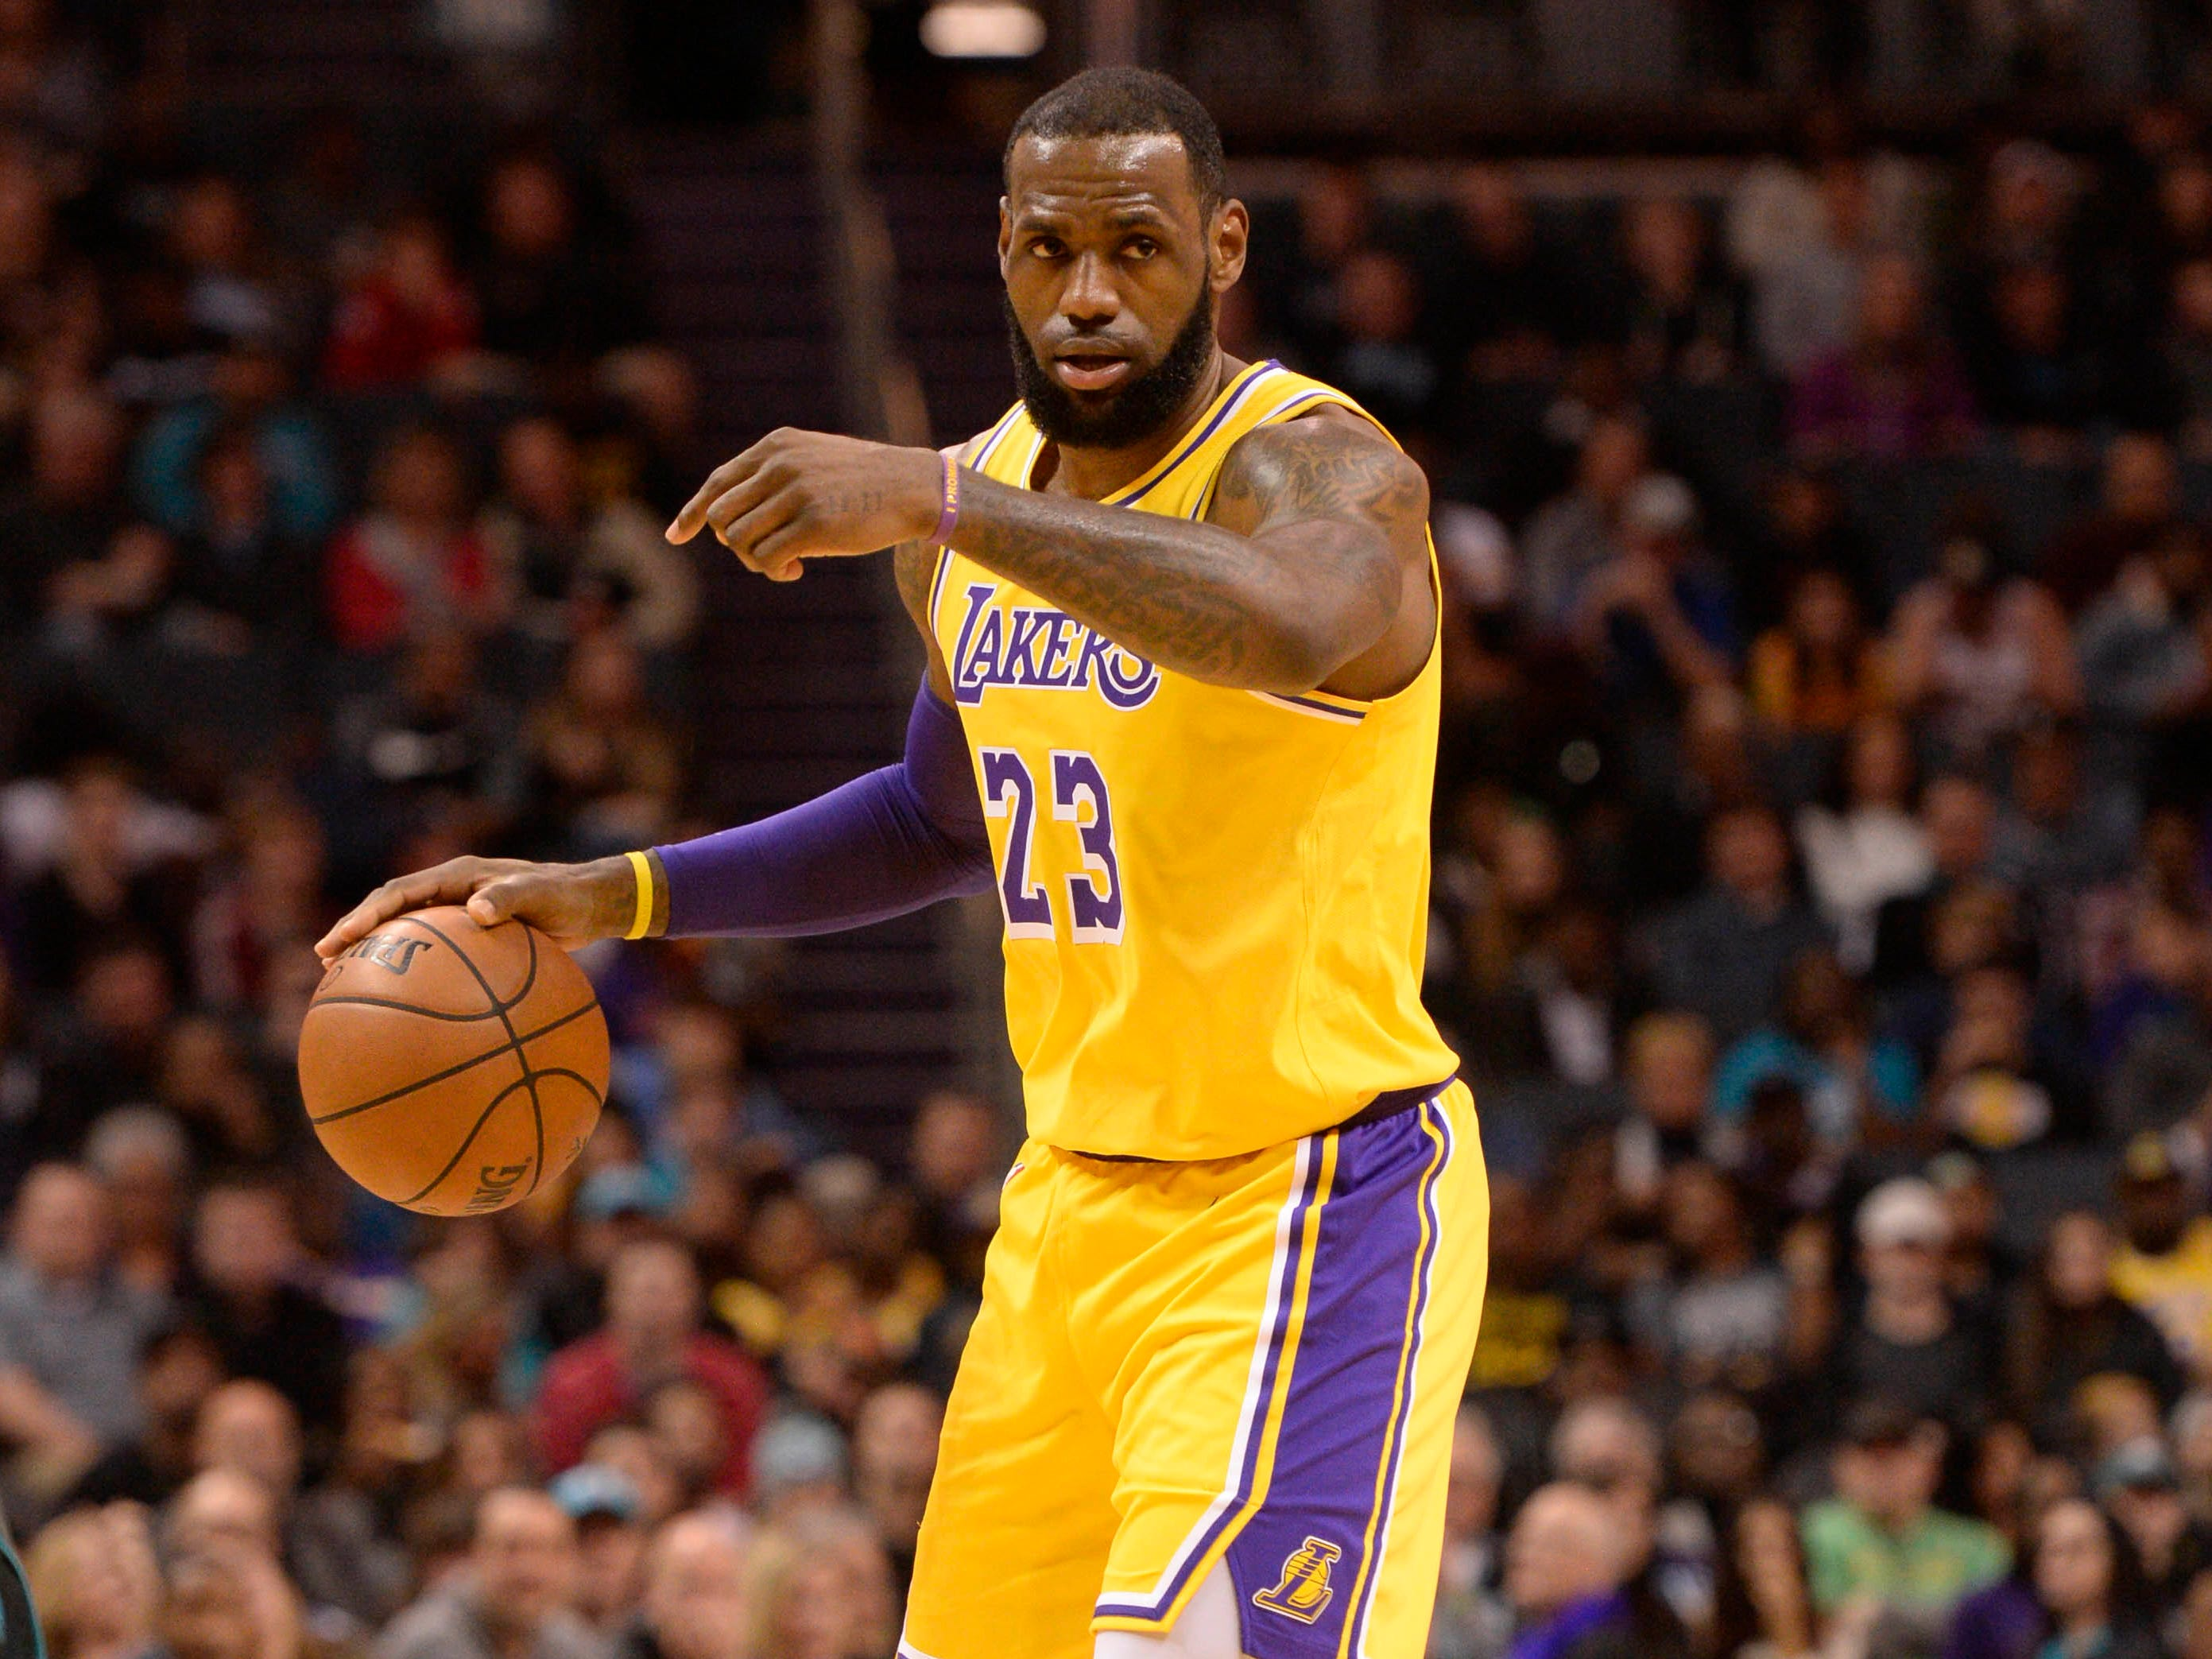 24. LeBron James, Lakers (Dec. 15): 24 points, 12 rebounds, 11 assists in 128-100 win over Hornets (second of season).